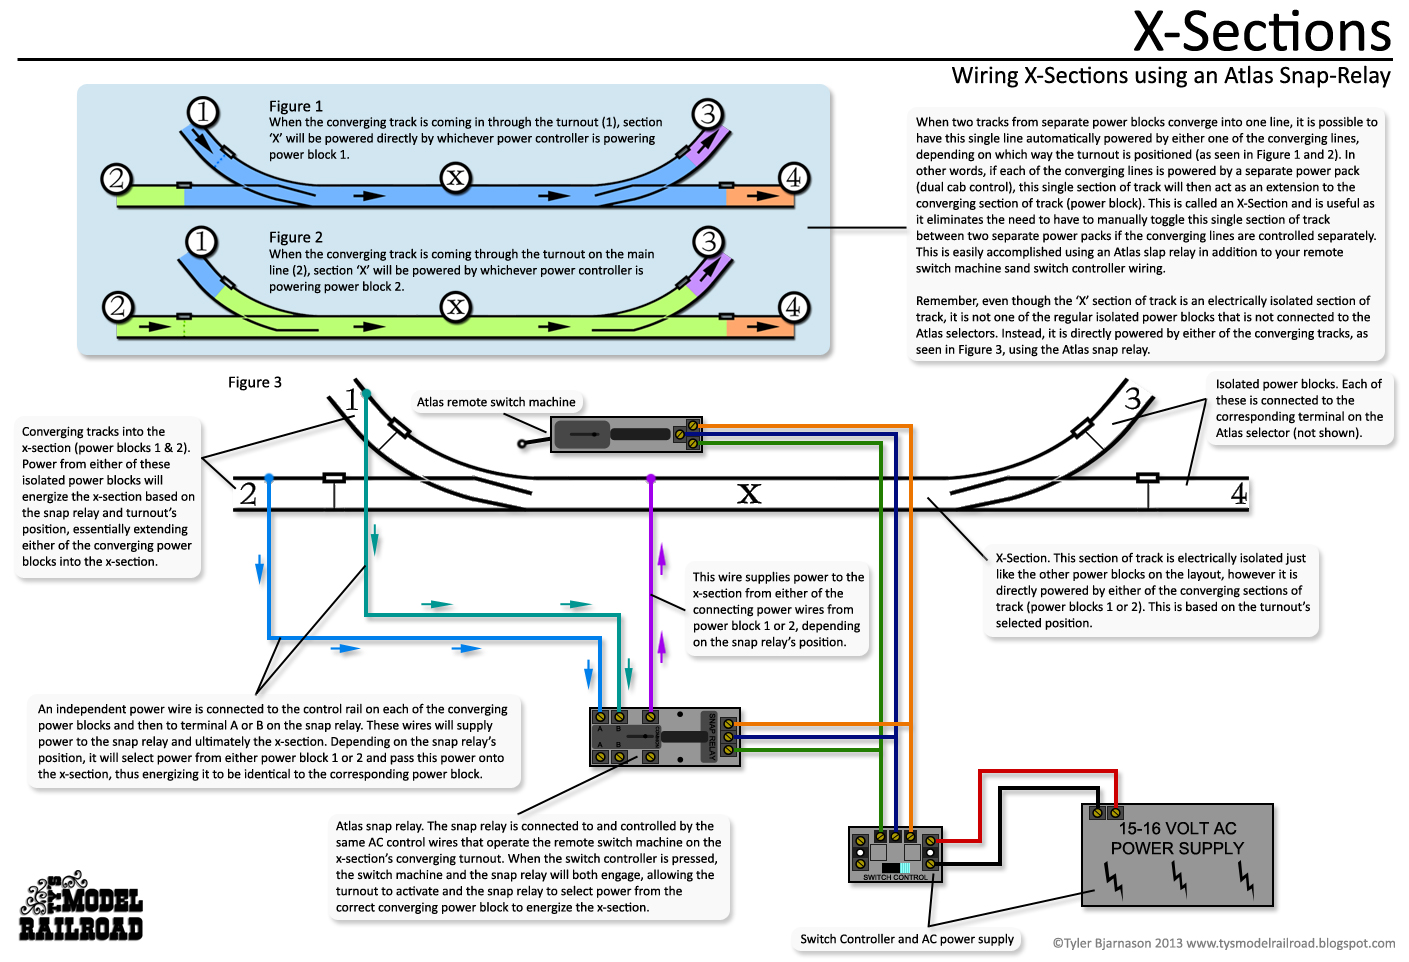 Tys Model Railroad Wiring Diagrams Two Light Diagram Relay On How To Wire An X Section Using Atlas Snap And Existing Remote Switch